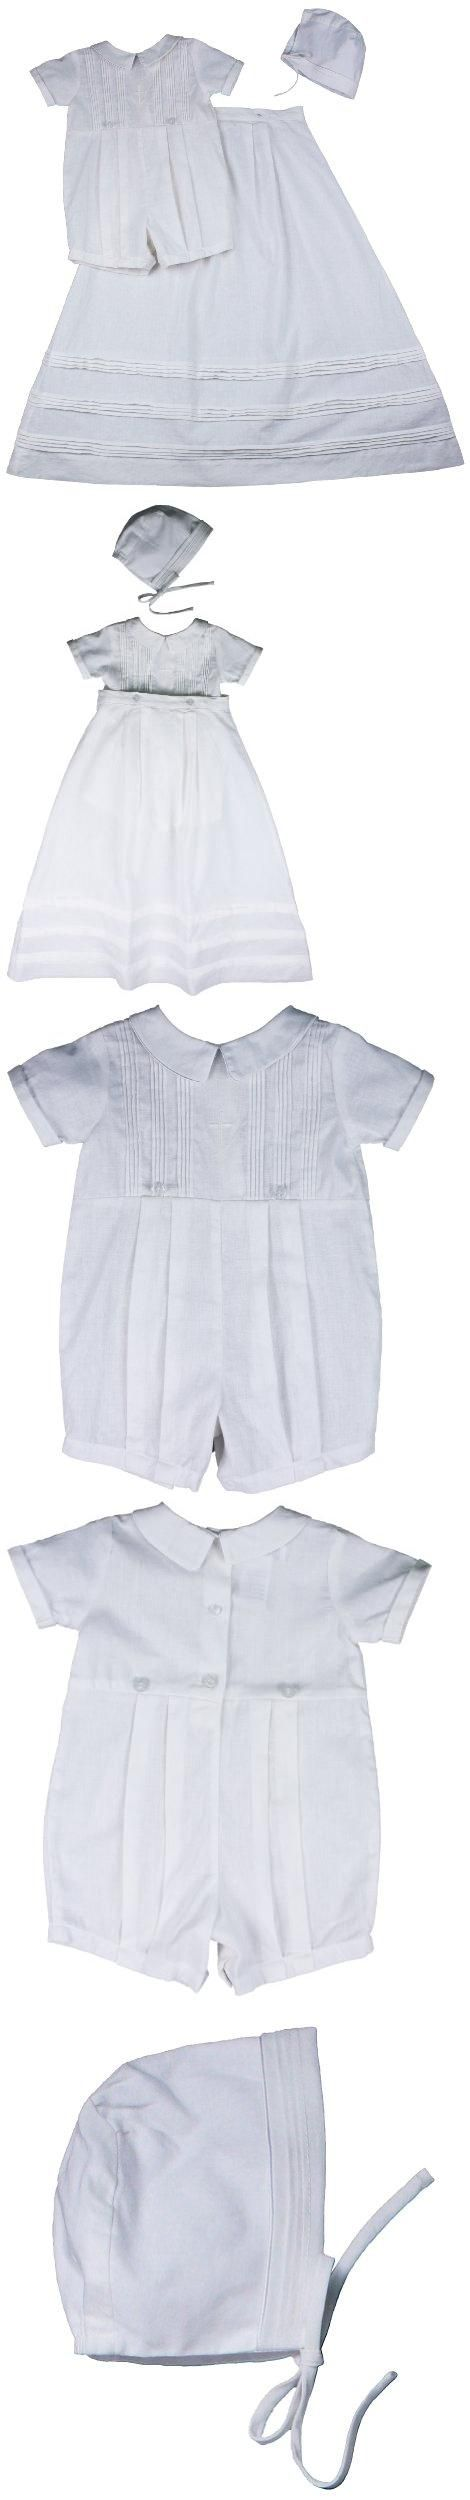 Connies Kids Boys White Embroidered Cross Romper with Hat